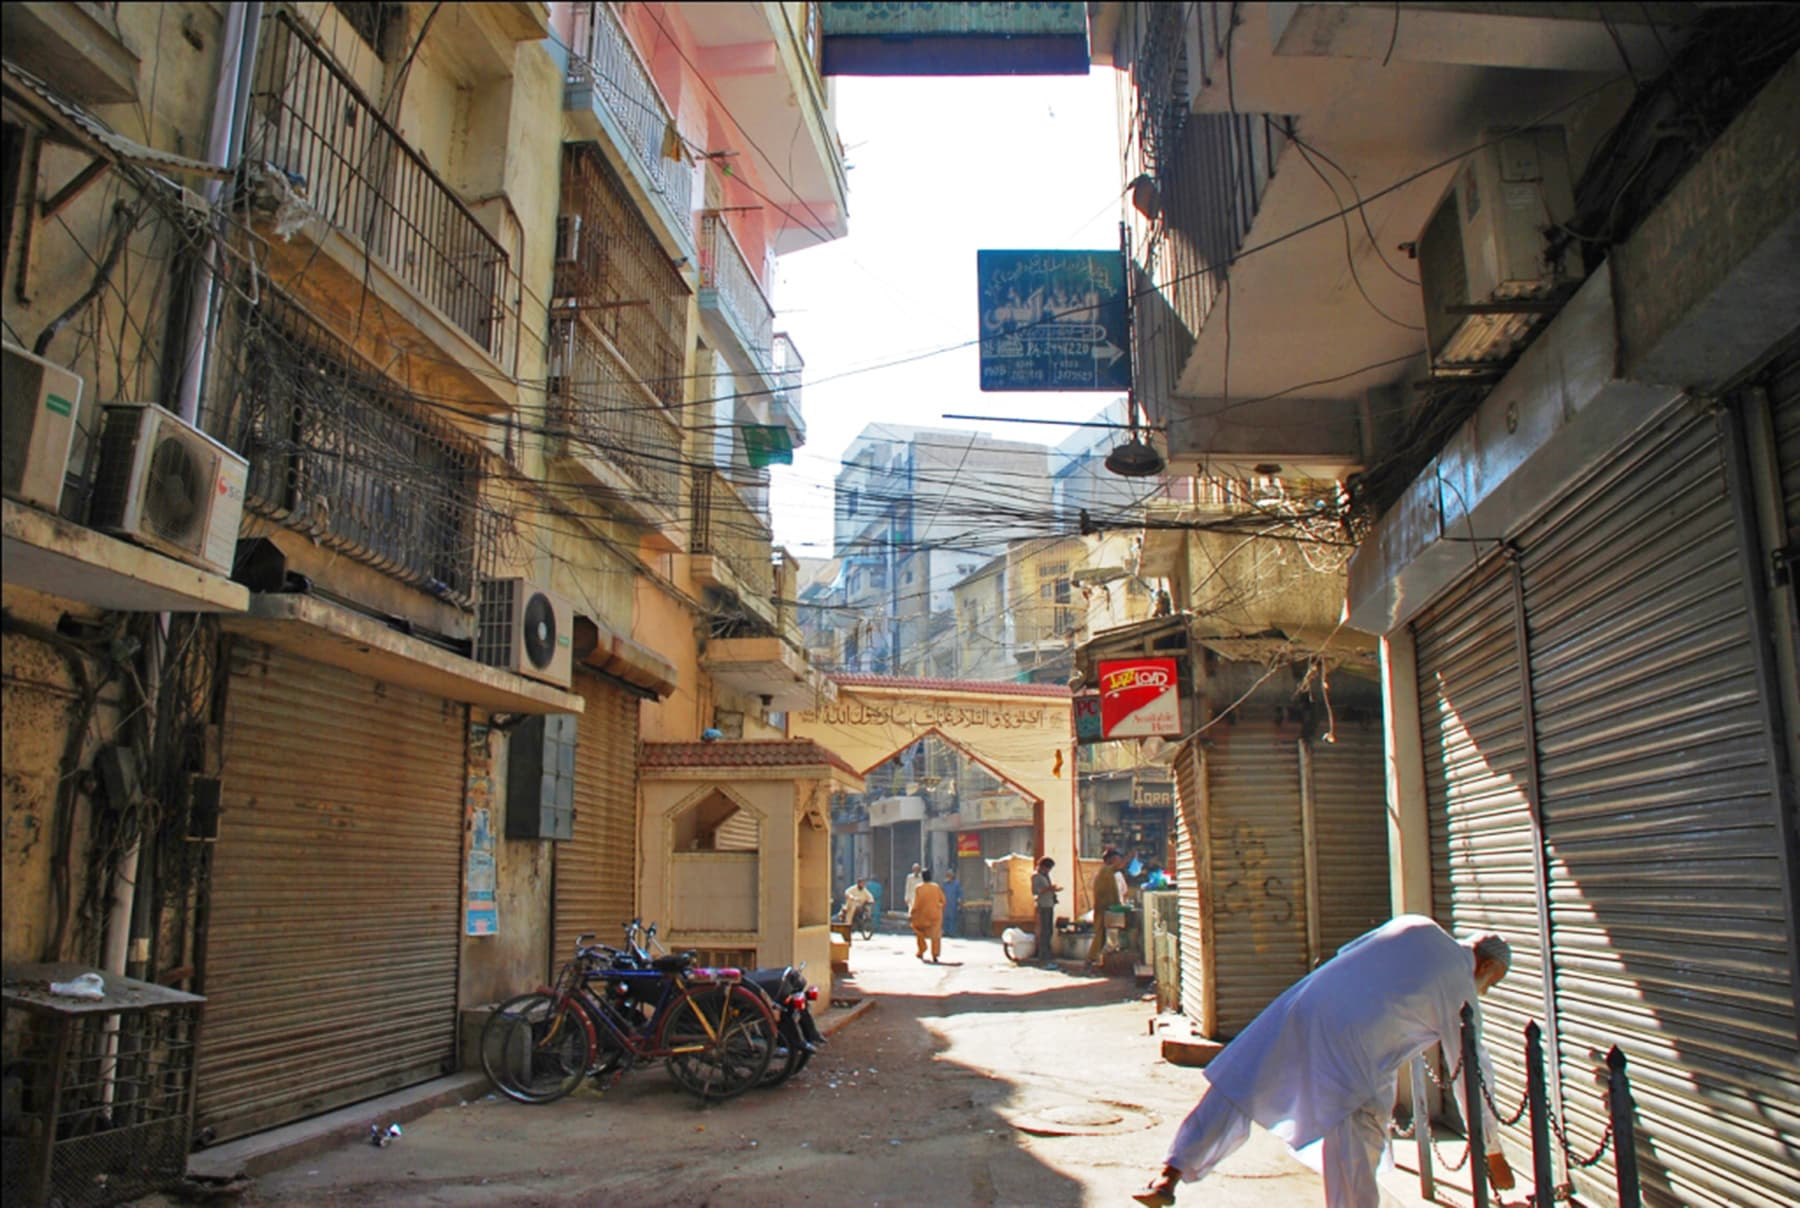 A shopkeeper opens his shop in the vicinity of Wazir Mansion.